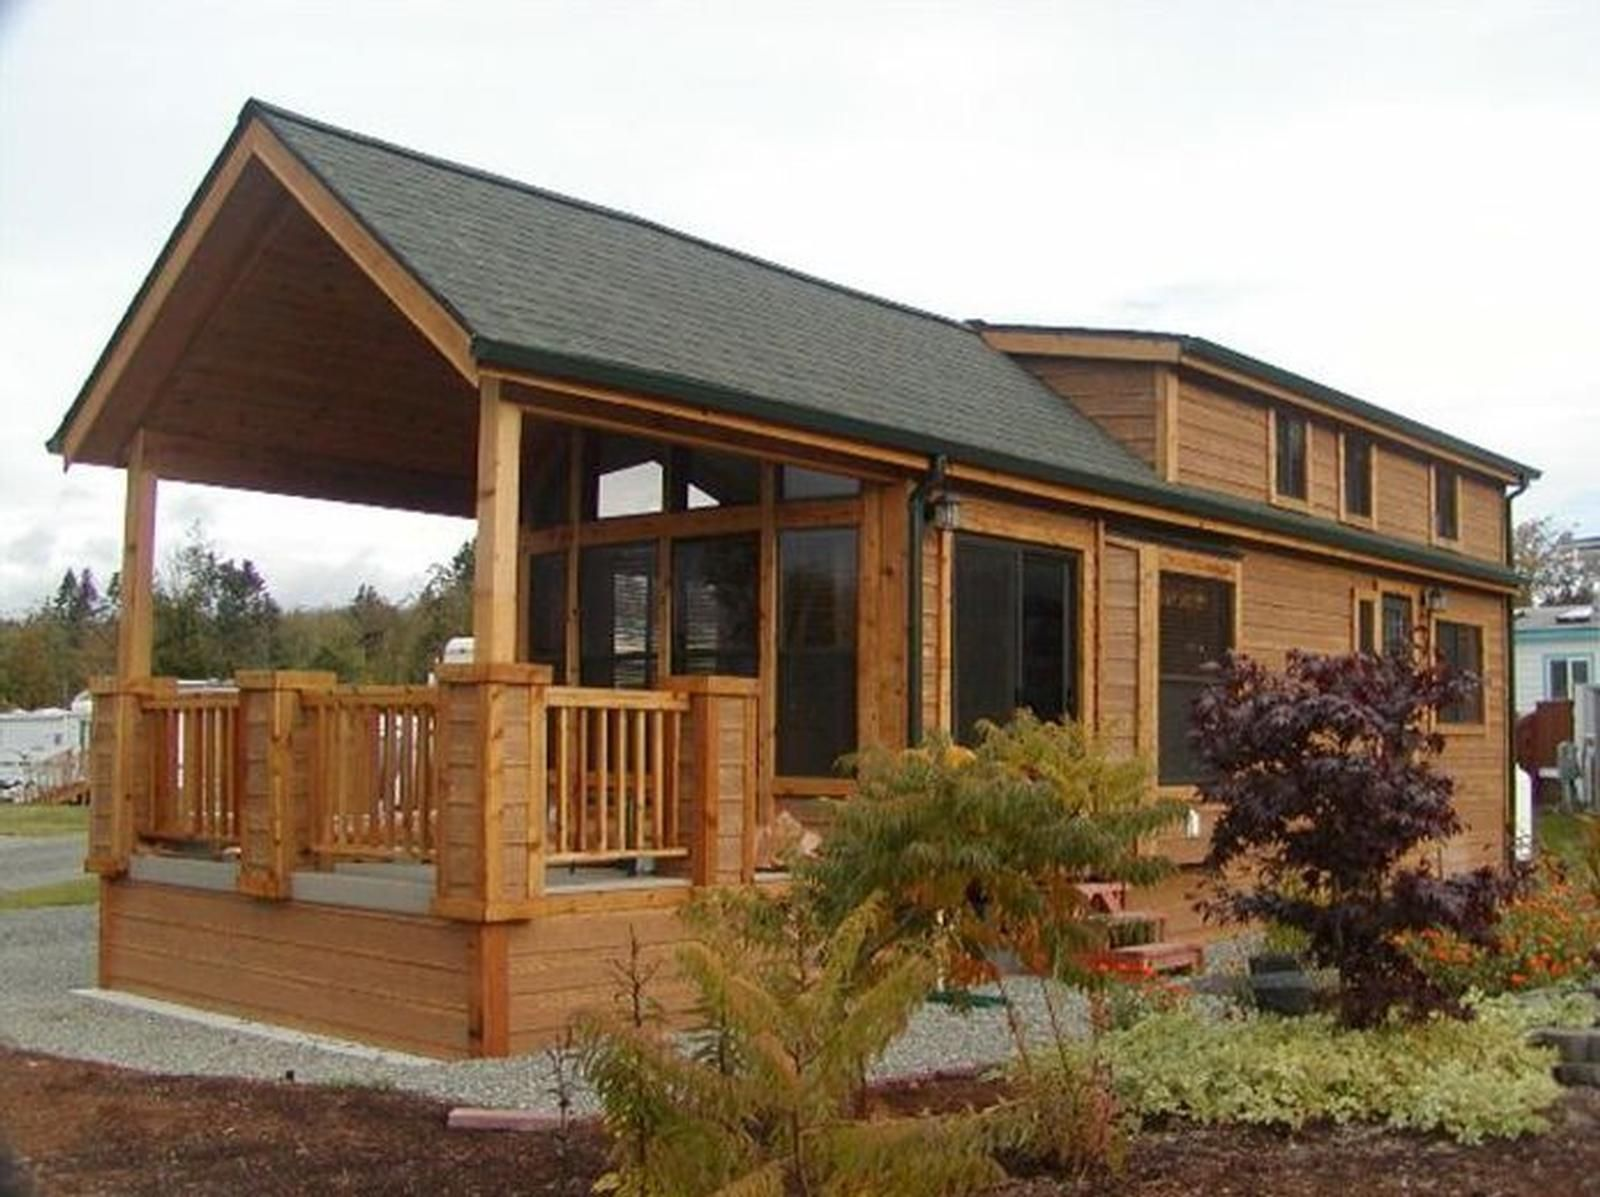 Park Model Homes Cabins Are A Great Way To Get Away Our Designed For Comfort And Durability With Exterior Ointments Match Its Natural